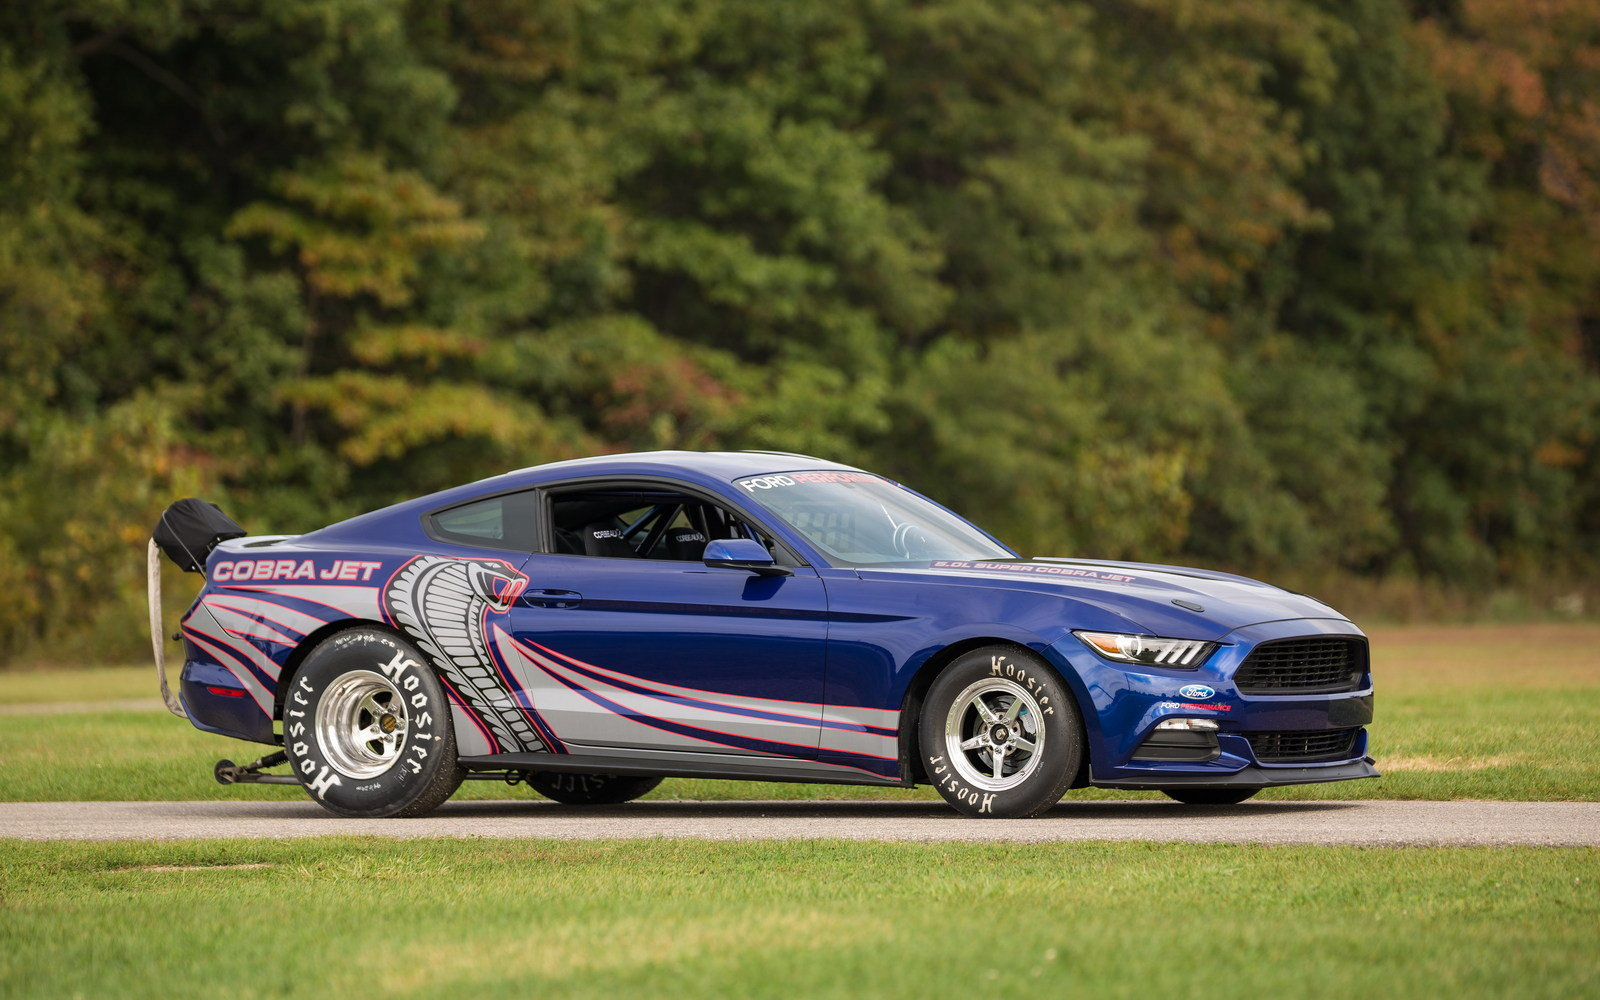 2016 ford mustang cobra jet picture 653941 car review for Jet cars review